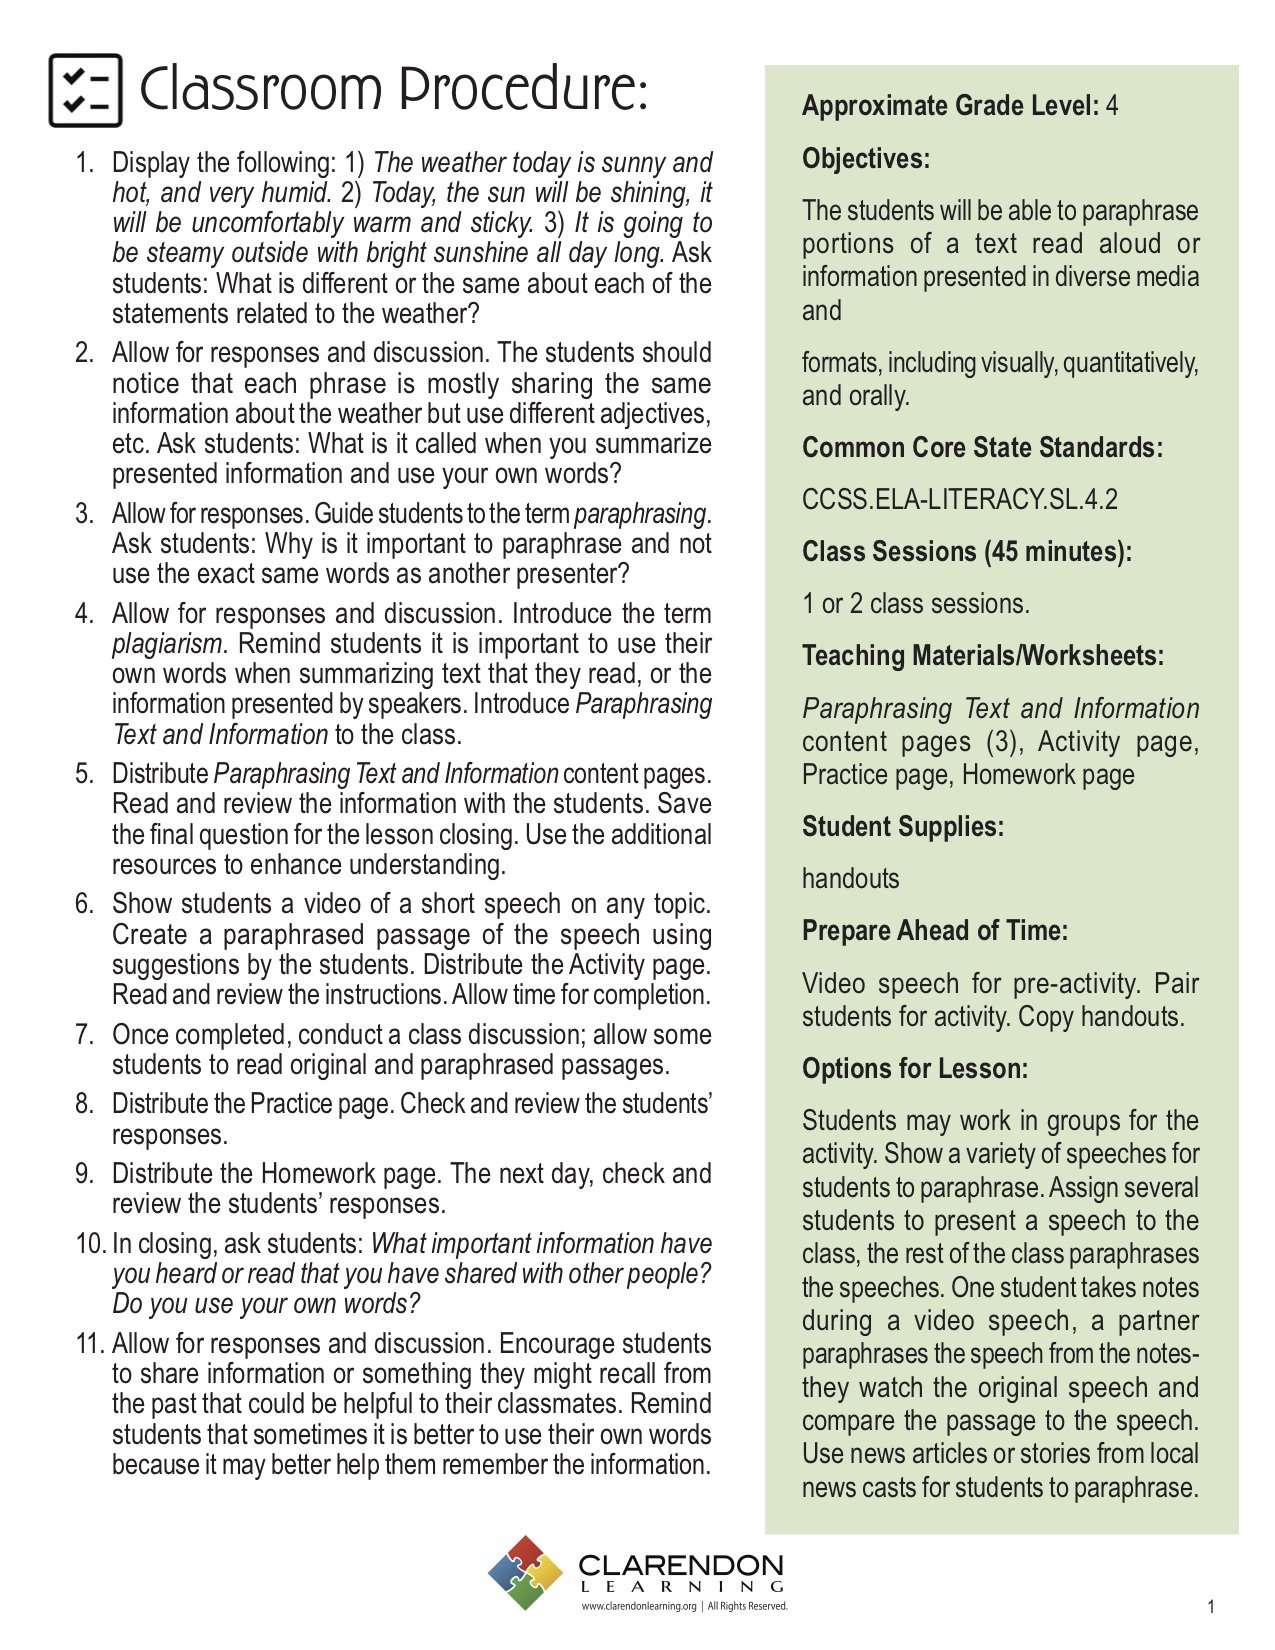 Paraphrasing Text And Information Lesson Plan Clarendon Learning Literacy Standard